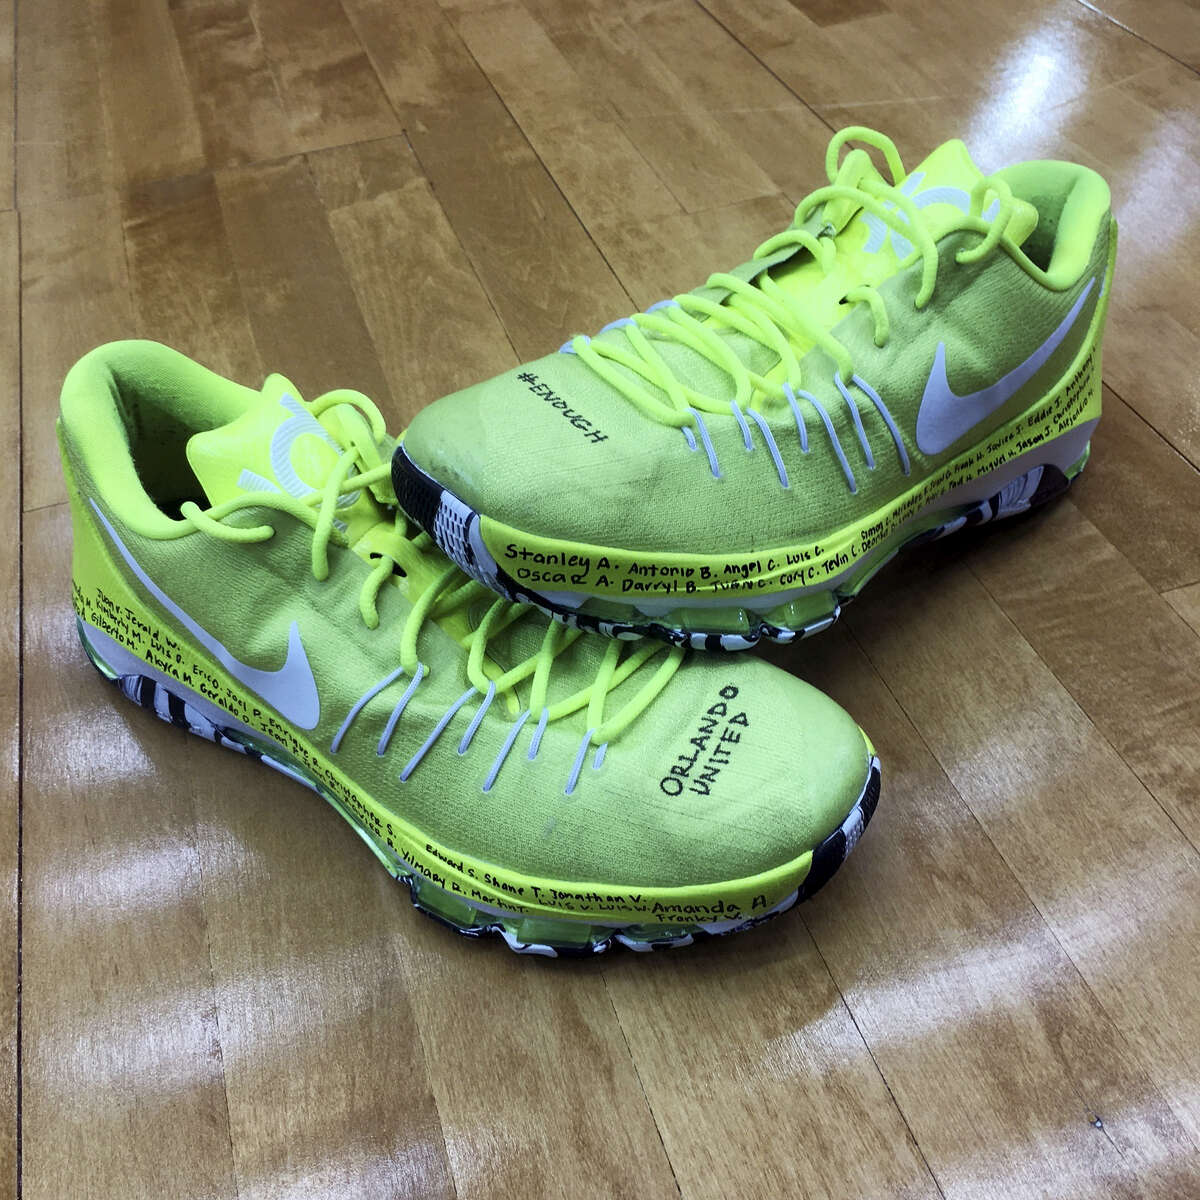 This undated photo provided by the Seattle Storm shows the shoes Breanna Stewart wore June 16, 2016, in the Storm's game against the Dallas Wings. The shoes will be auctioned to benefit the OneOrlando fund.